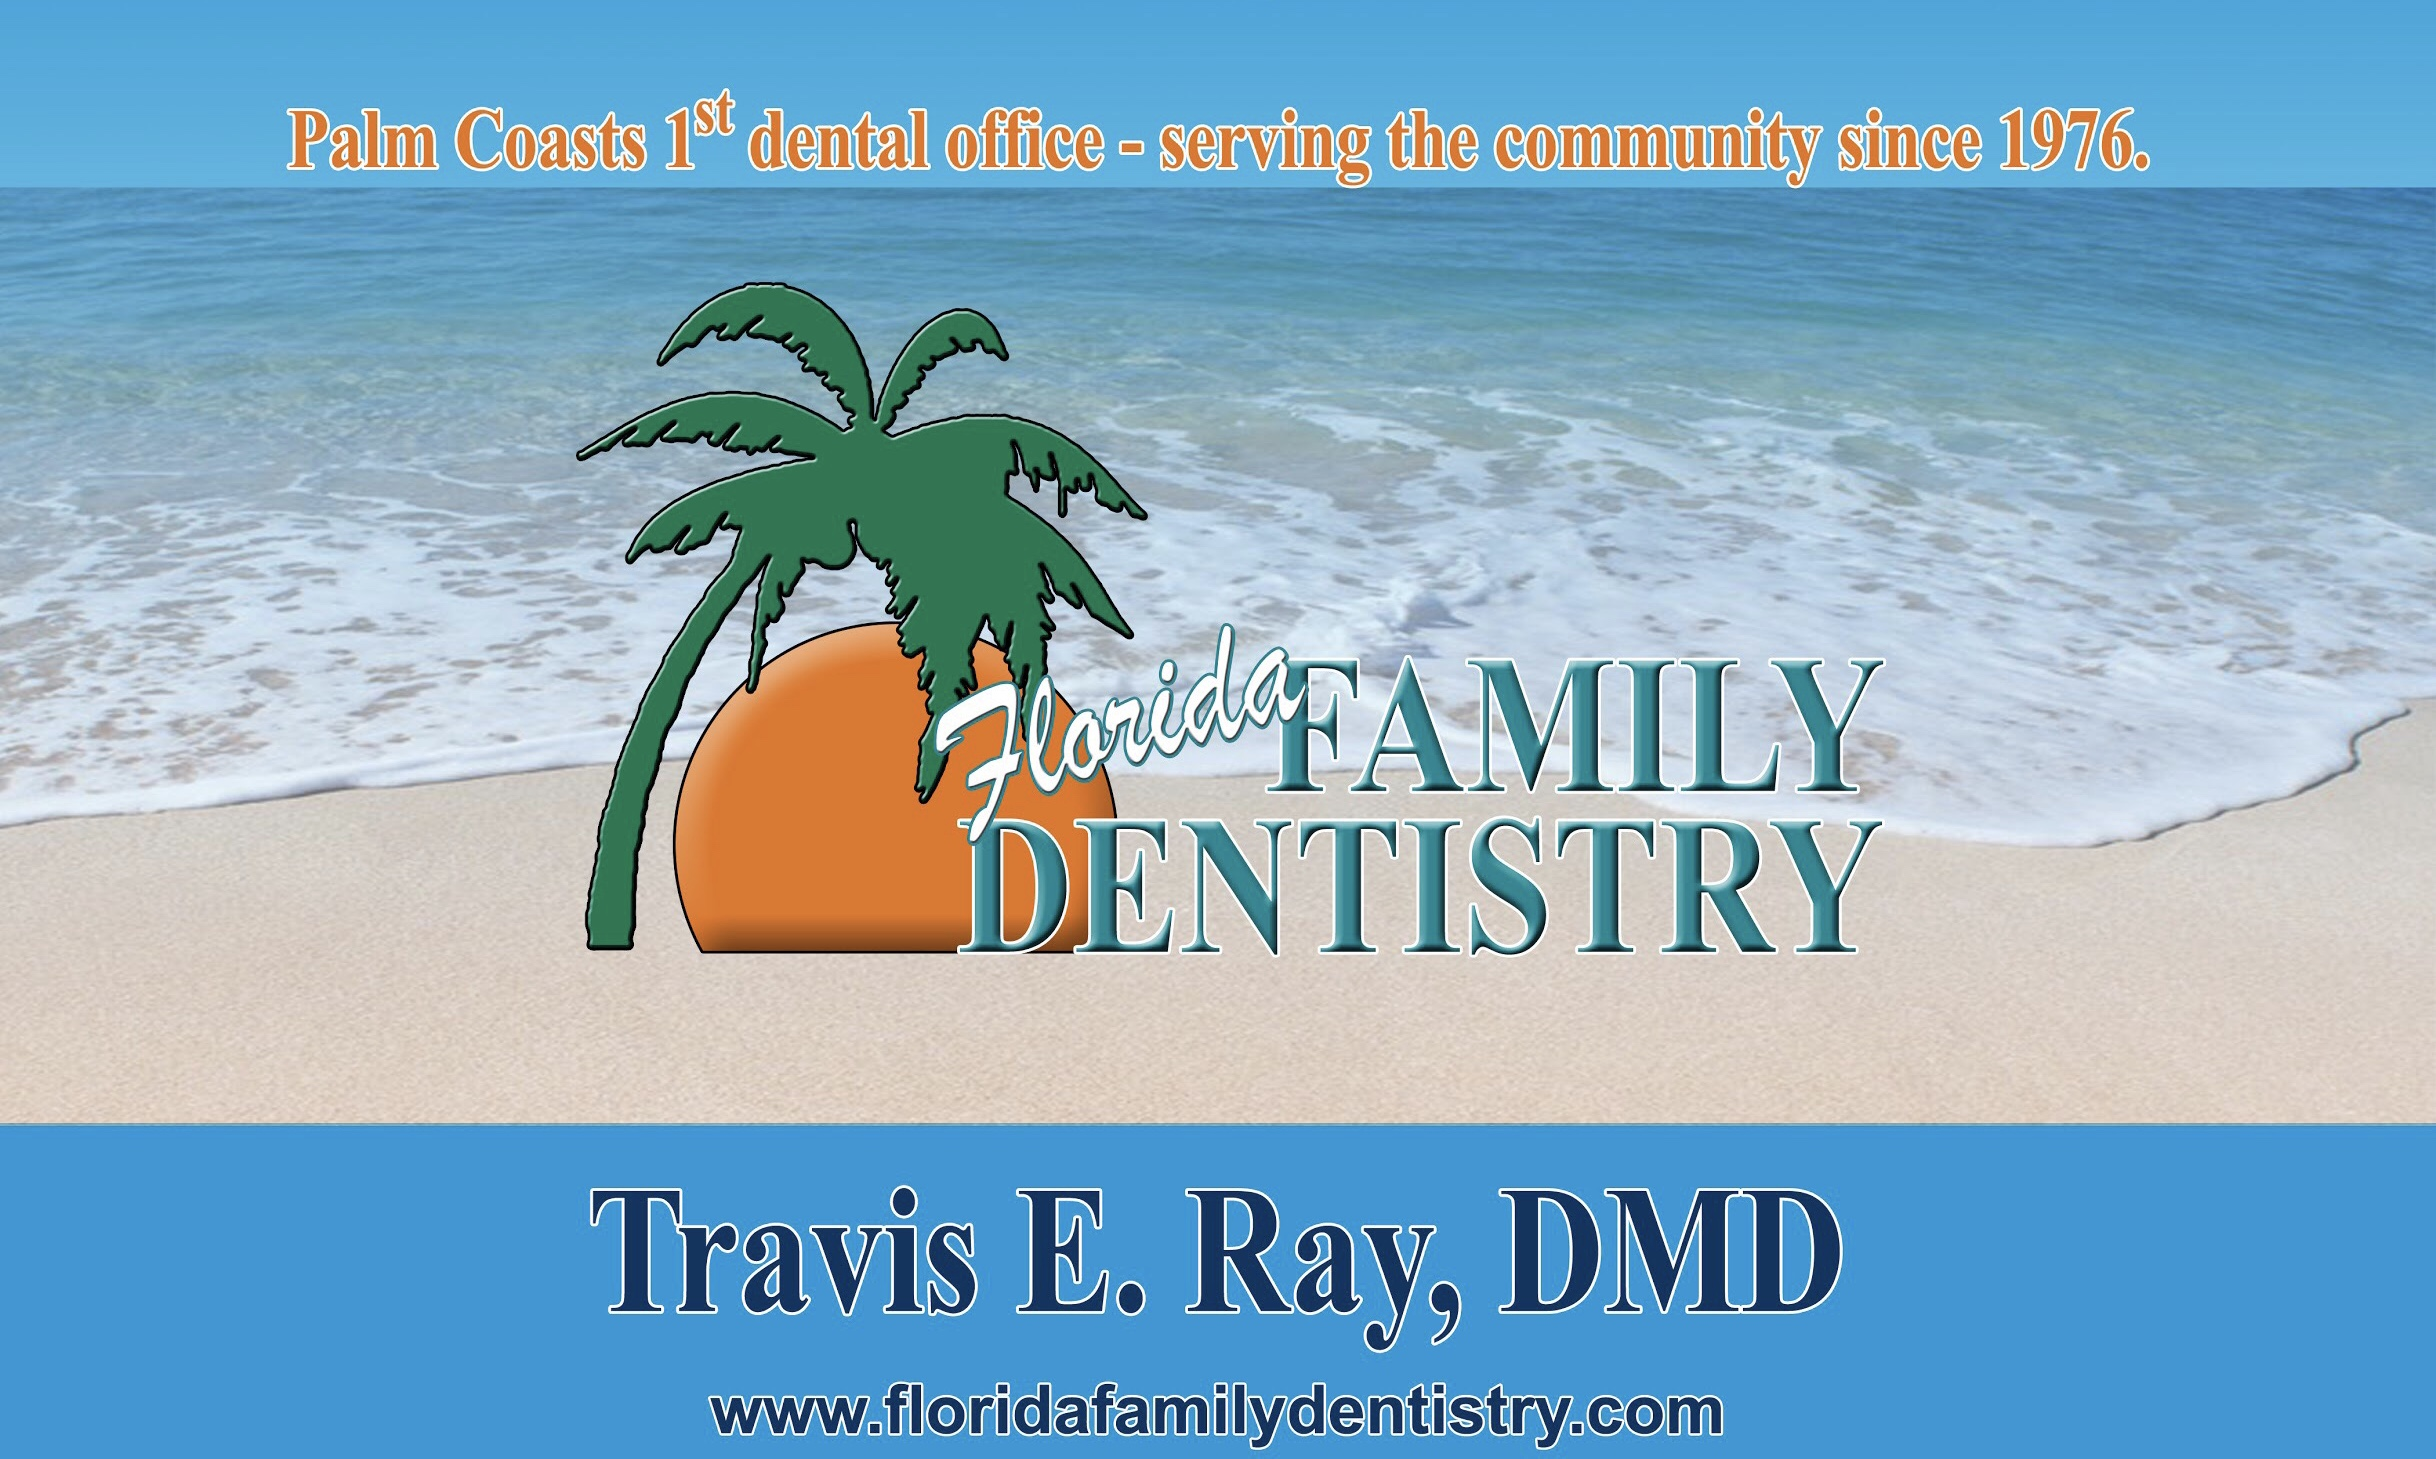 Fl Family Dentistry logo